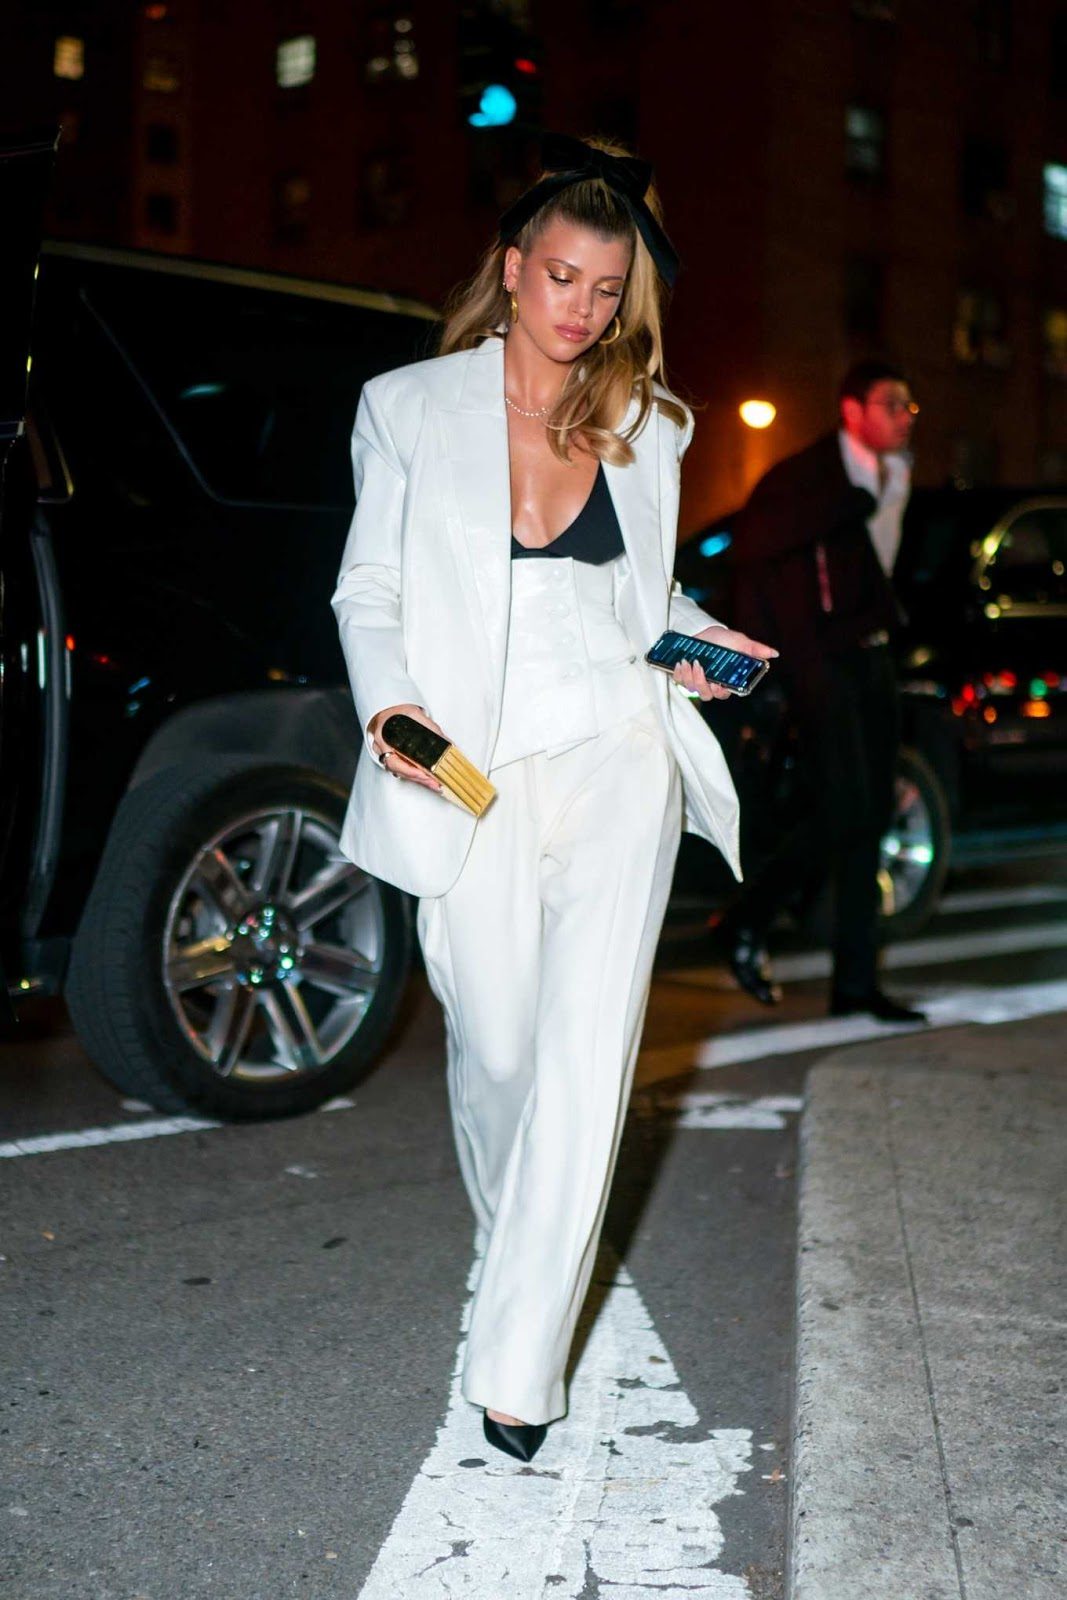 Sofia Richie Latest Astonishing Photos in White Outfit